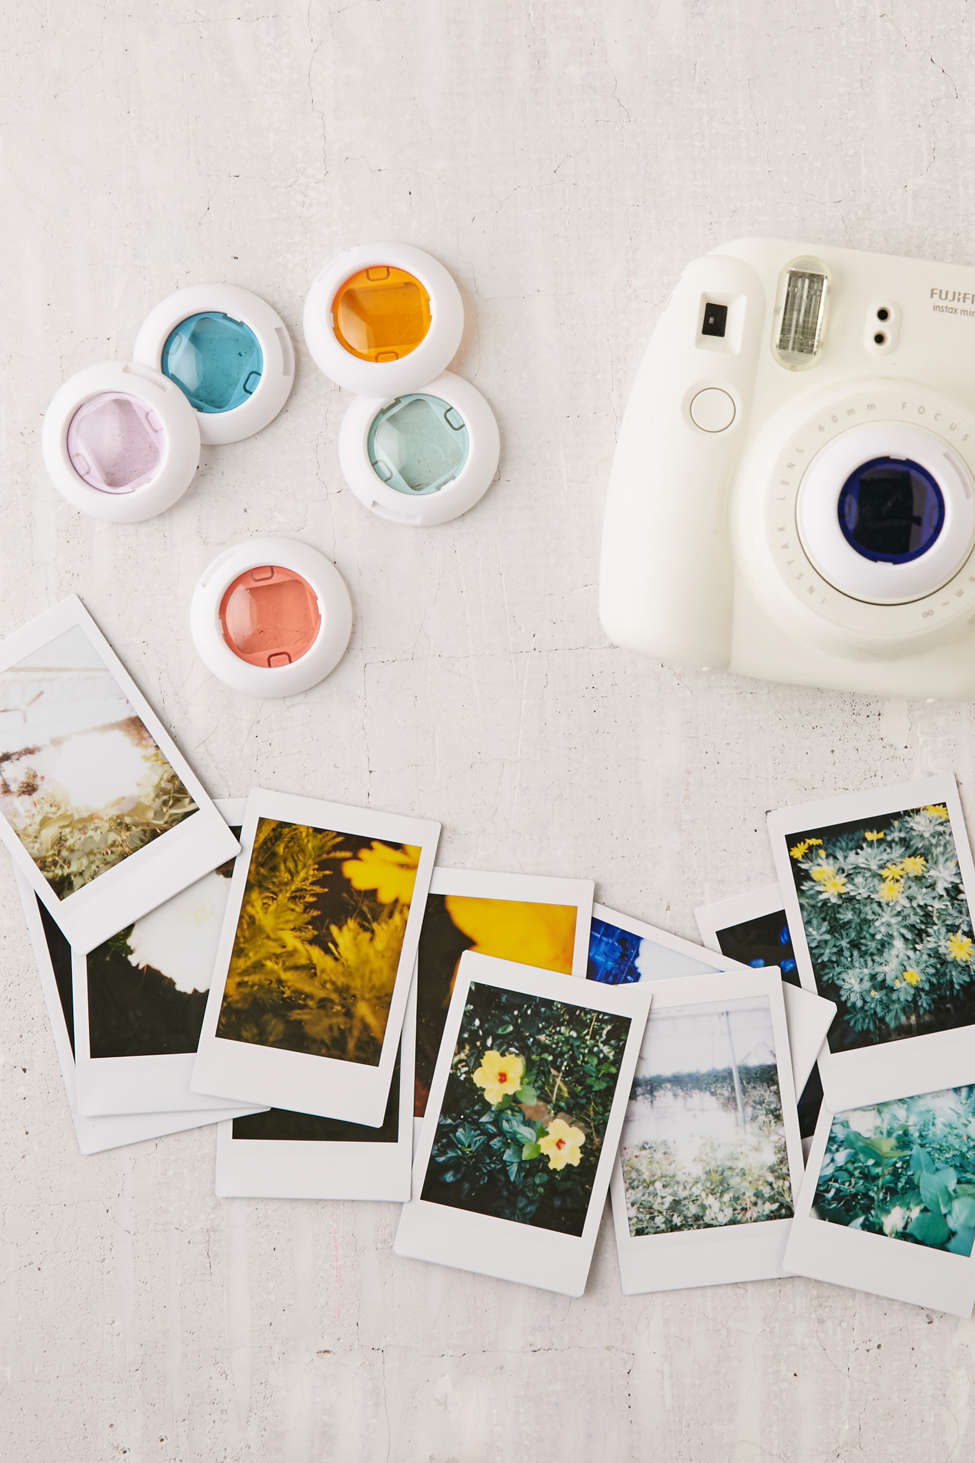 Instax Mini Color Filter Lens Set Urban Outfitters